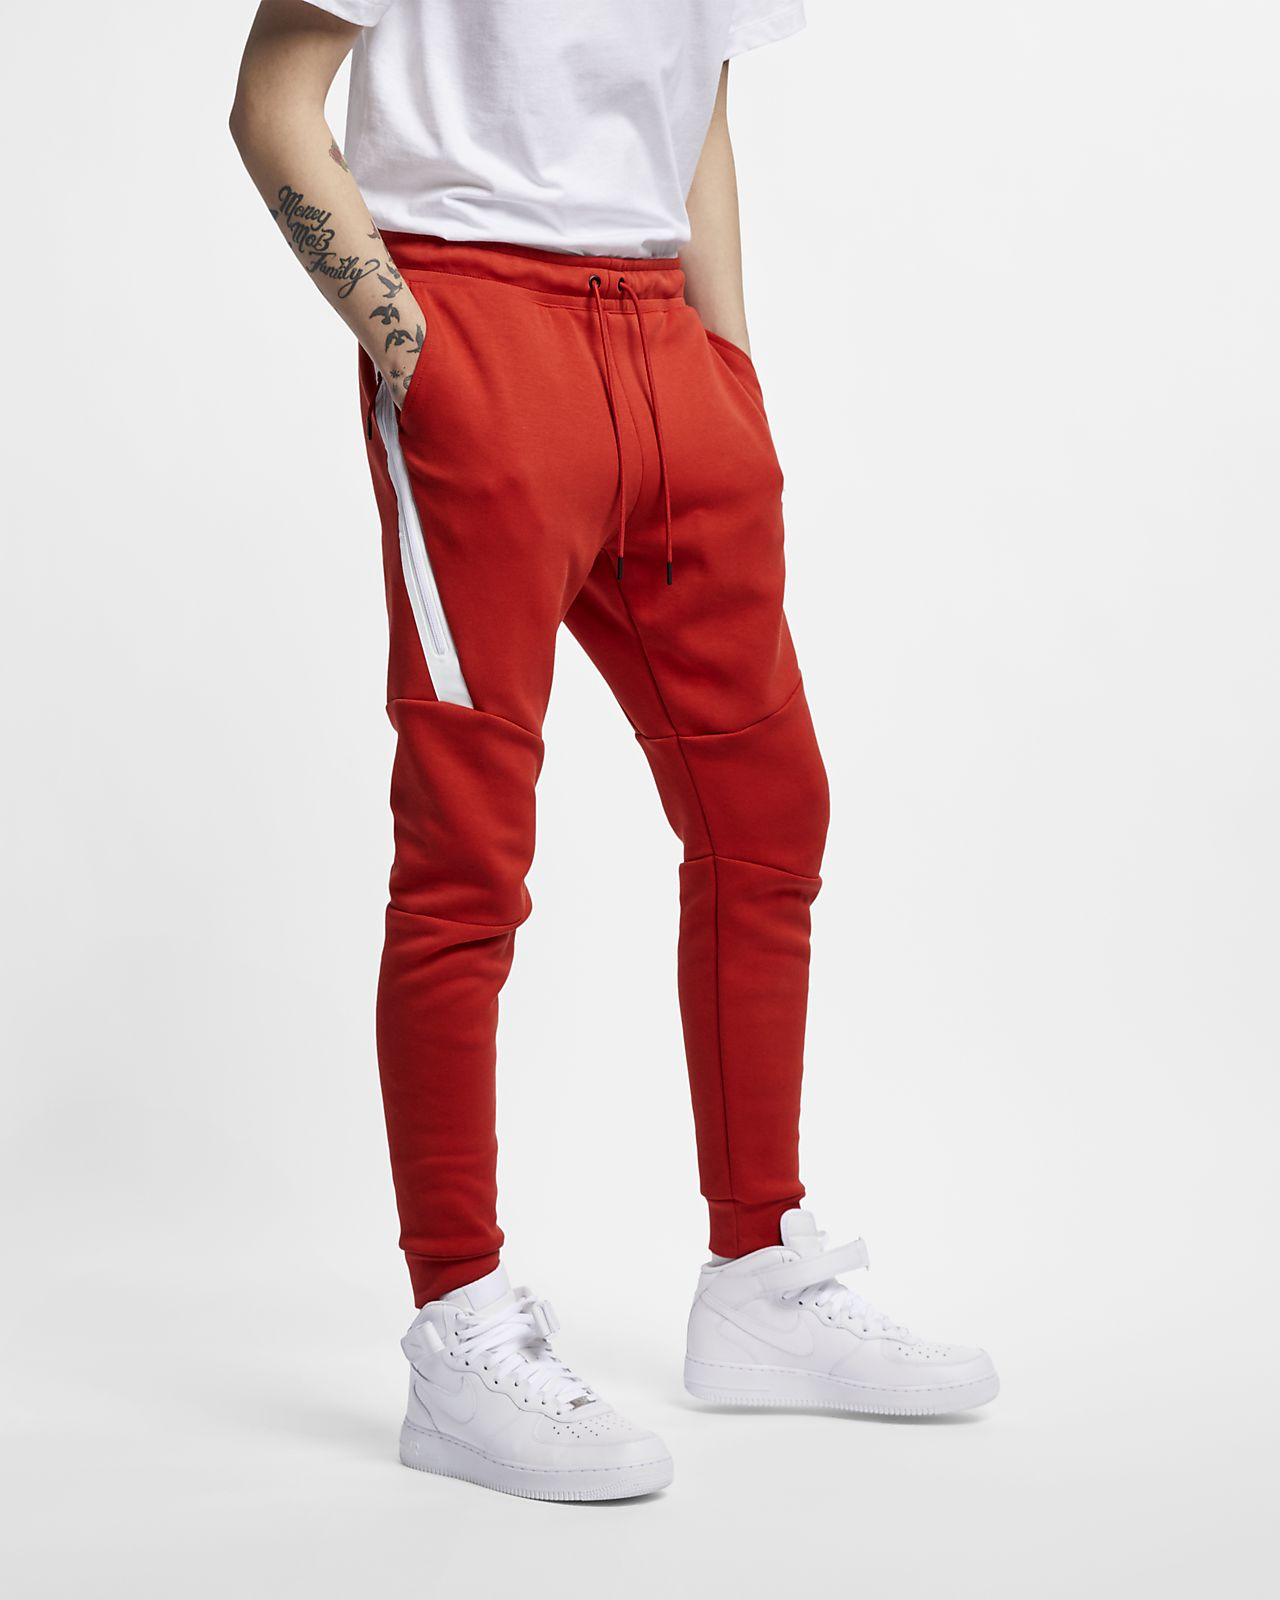 fb94f762 Nike Sportswear Tech Fleece Men's Joggers. Nike.com NL